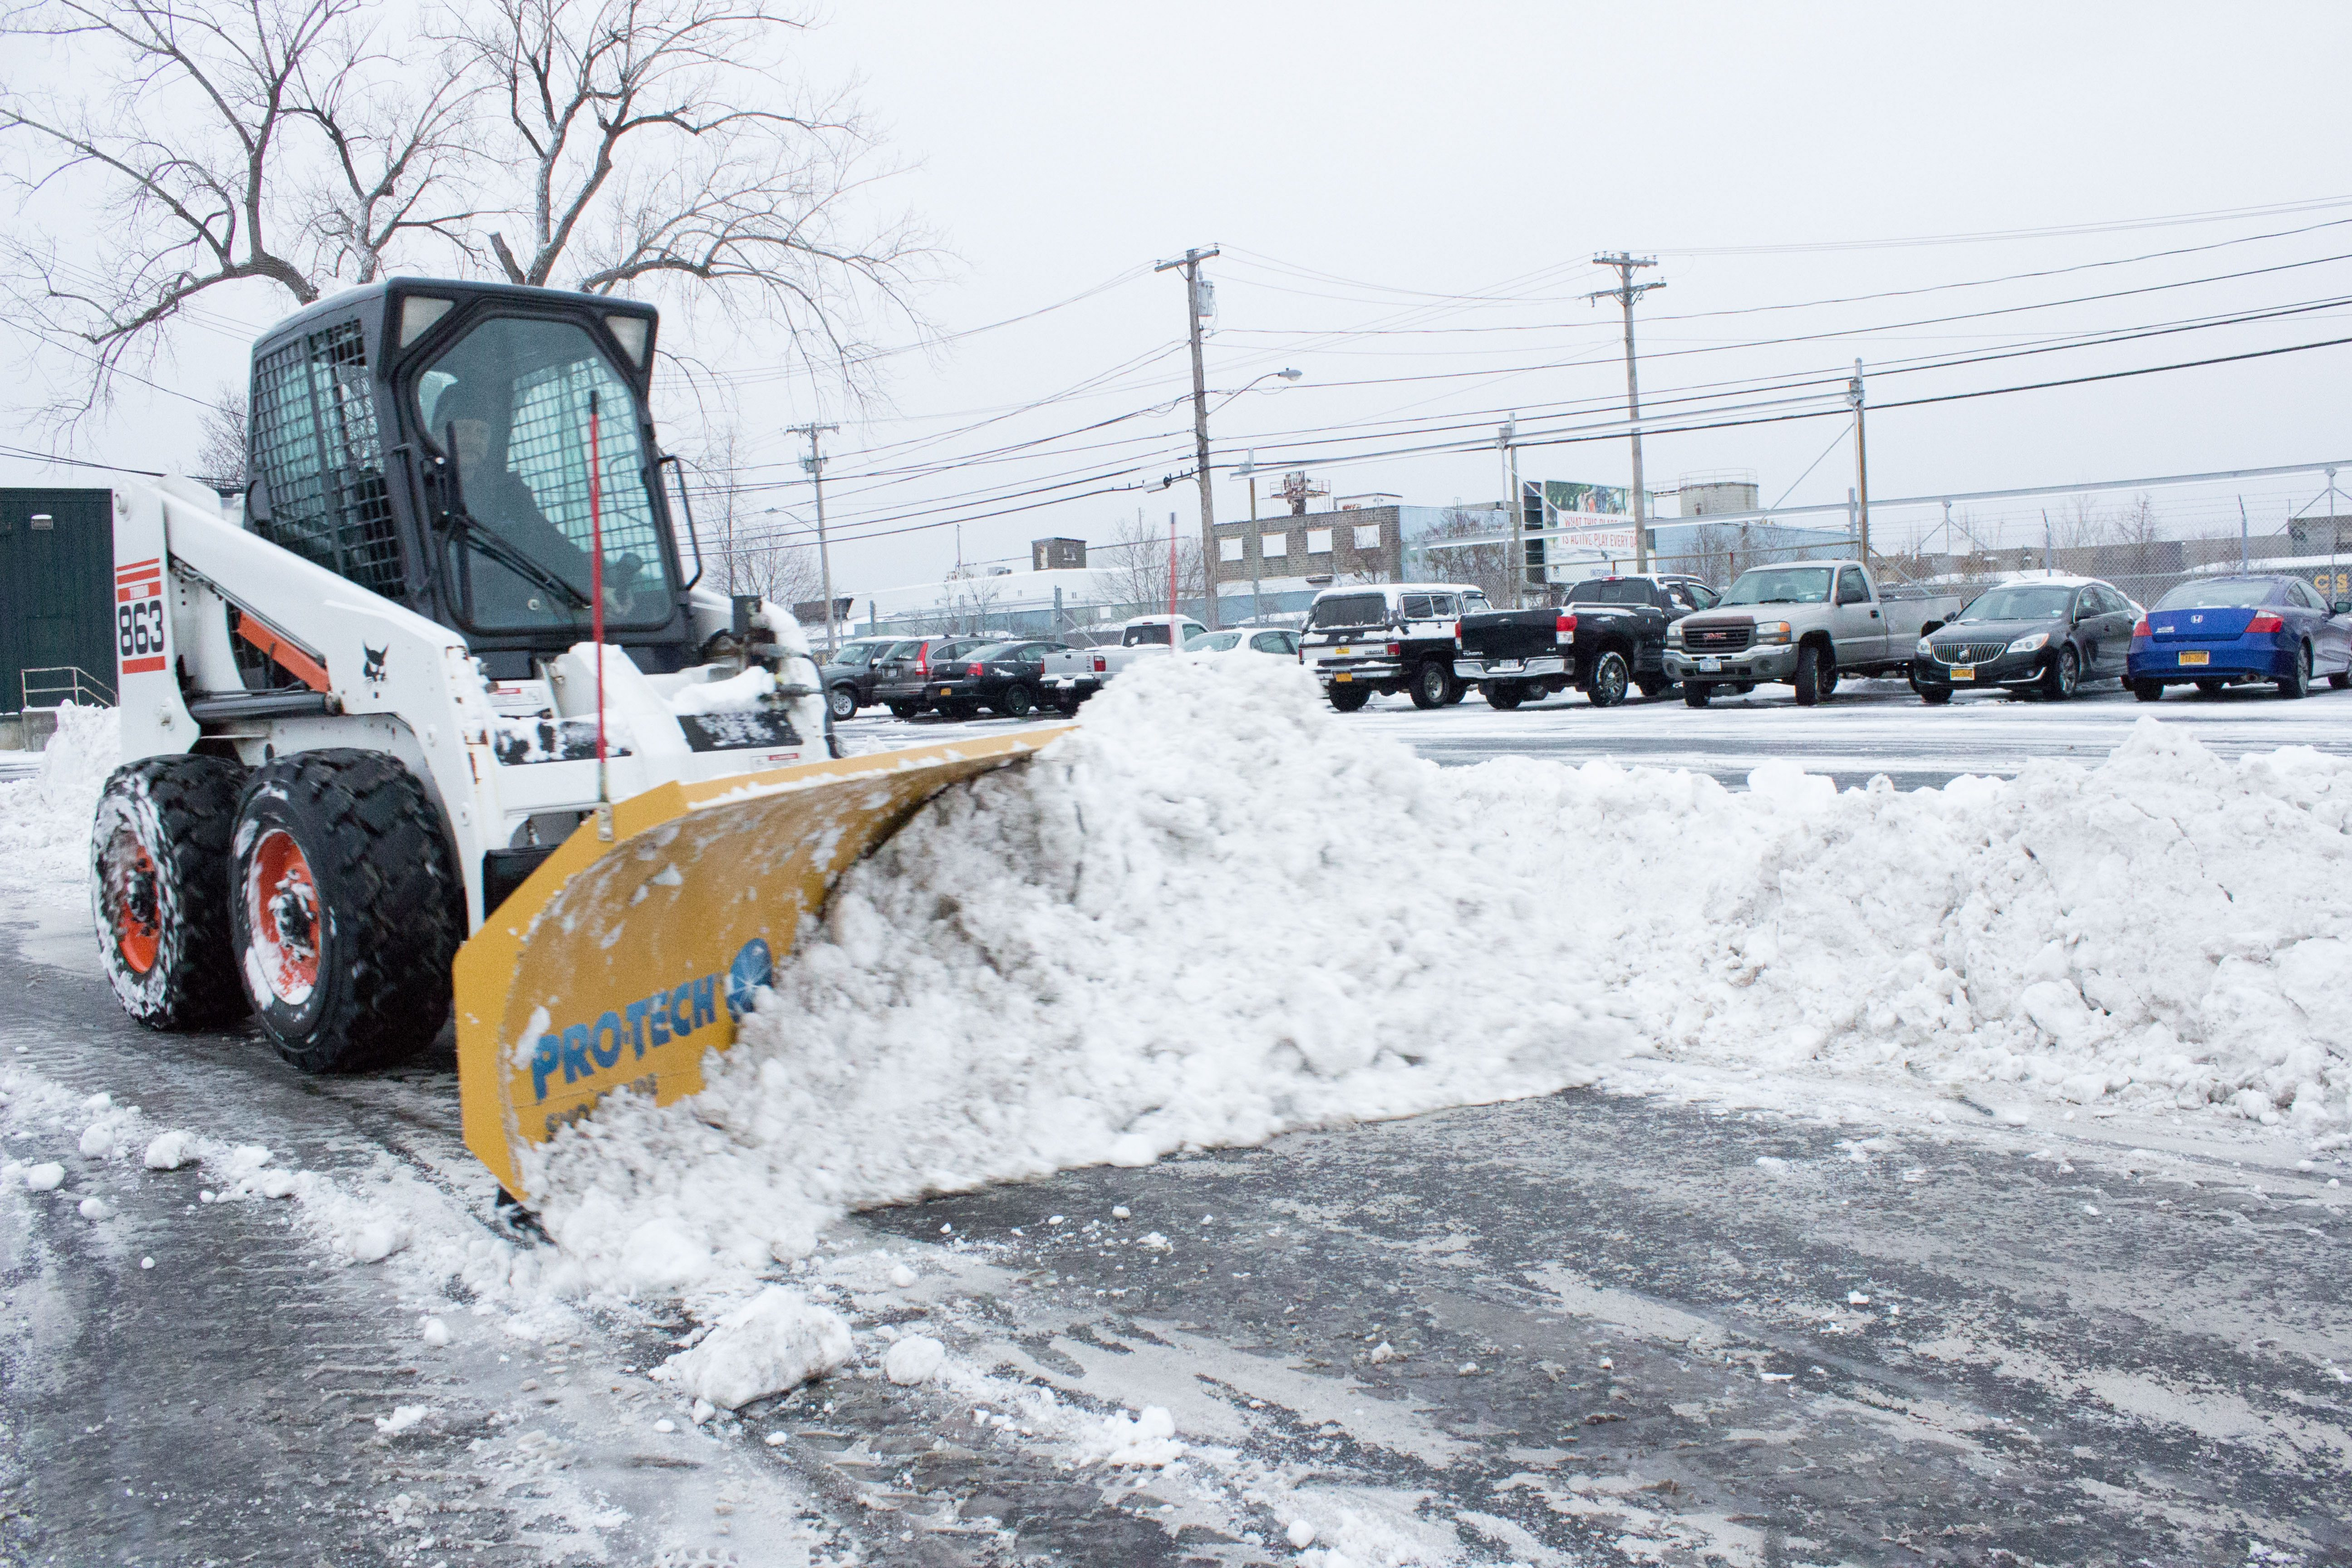 Bobcat Compact Excavators For Sale Rent Or Lease In New